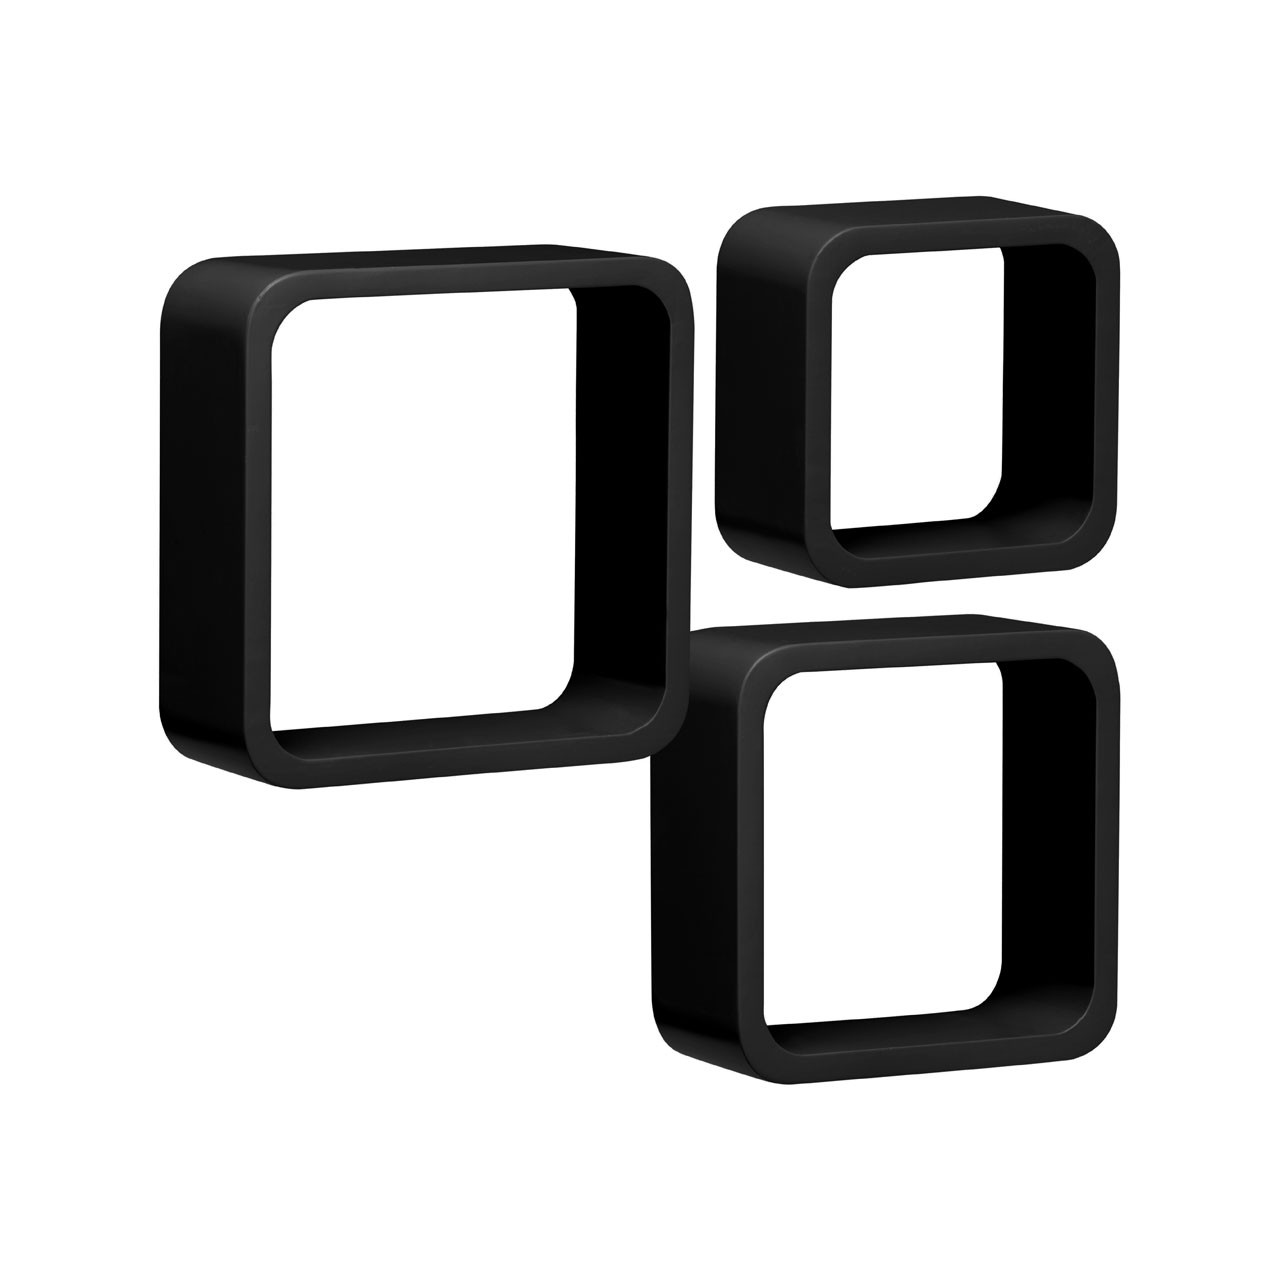 Wall Cubes, Set of 3, Black